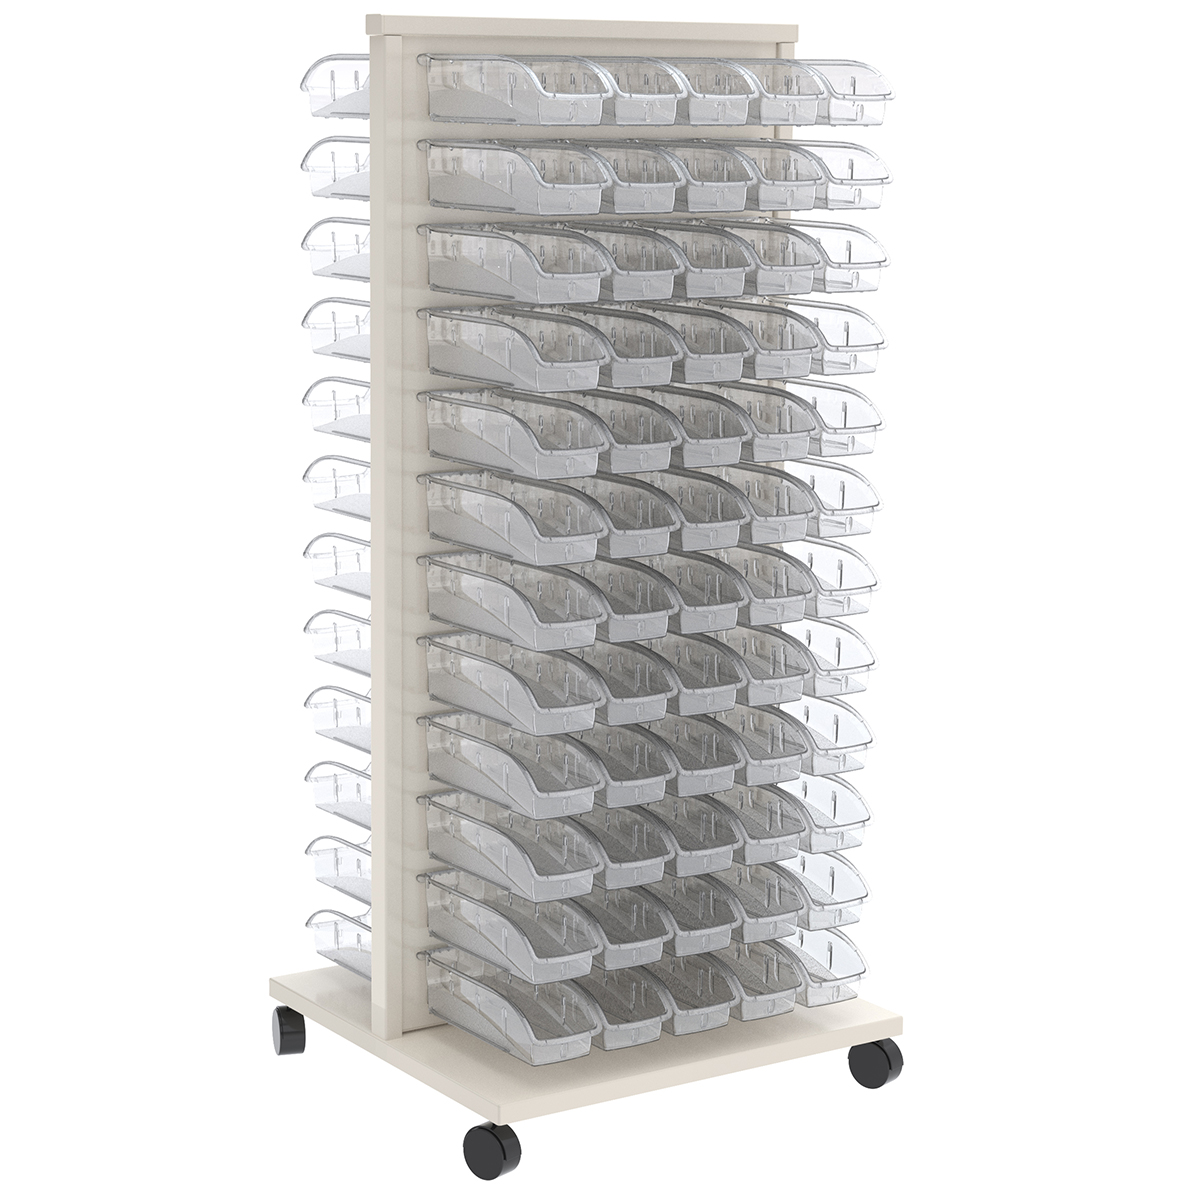 Item DISCONTINUED by Manufacturer.  ReadySpace Floor Unit w/ 120 InSight Bins 305A5, White/Clear (30553A5).  This item sold in carton quantities of 1.